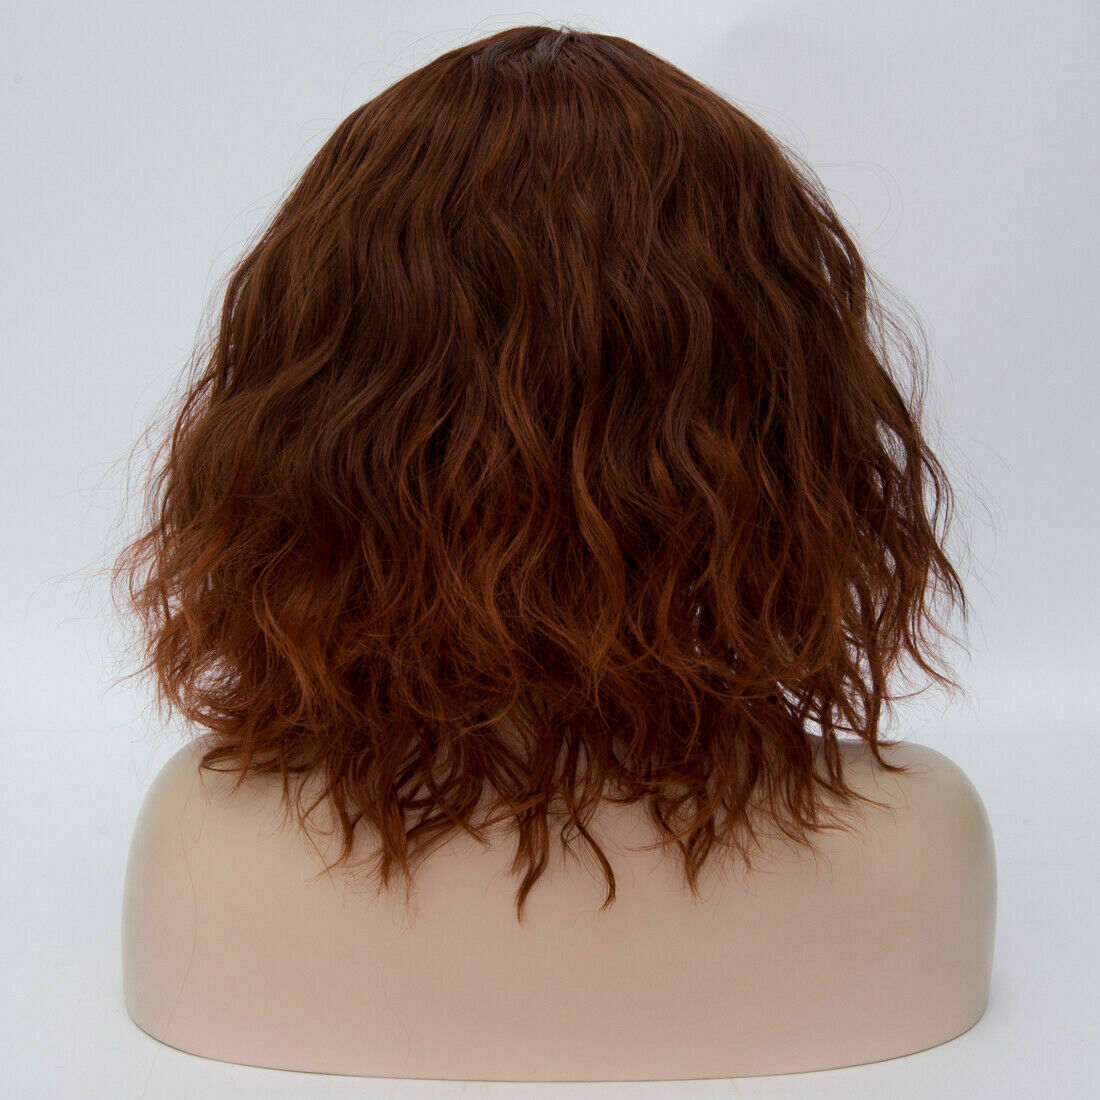 Lolita-Women-039-s-Short-Curly-Anime-Synthetic-Hair-Heat-Resistant-Cosplay-Party-Wig miniature 15